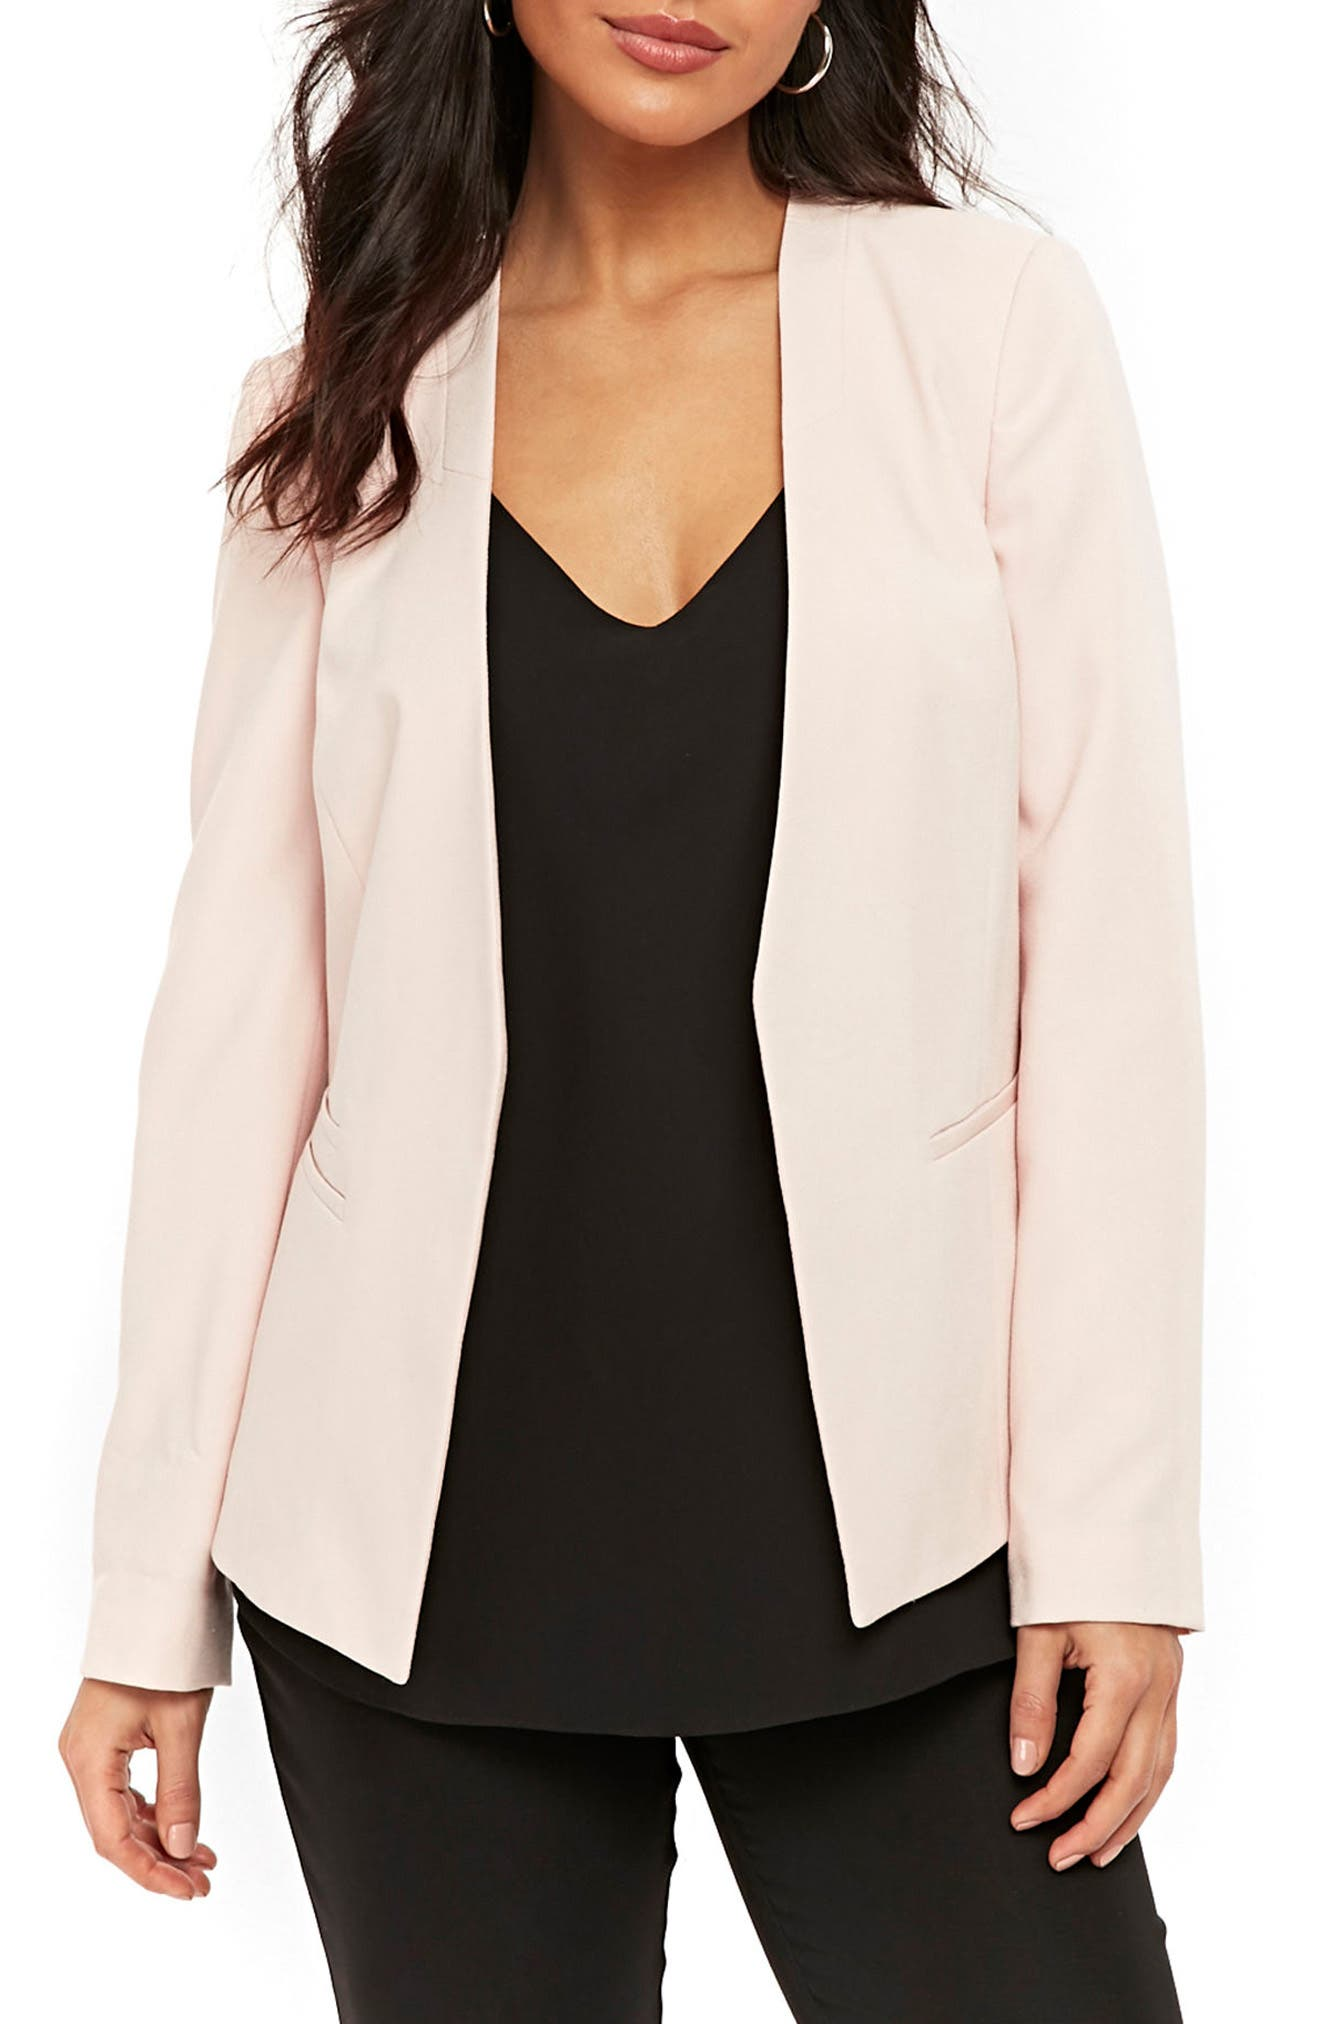 Giglio Edge to Edge Jacket,                         Main,                         color, 650